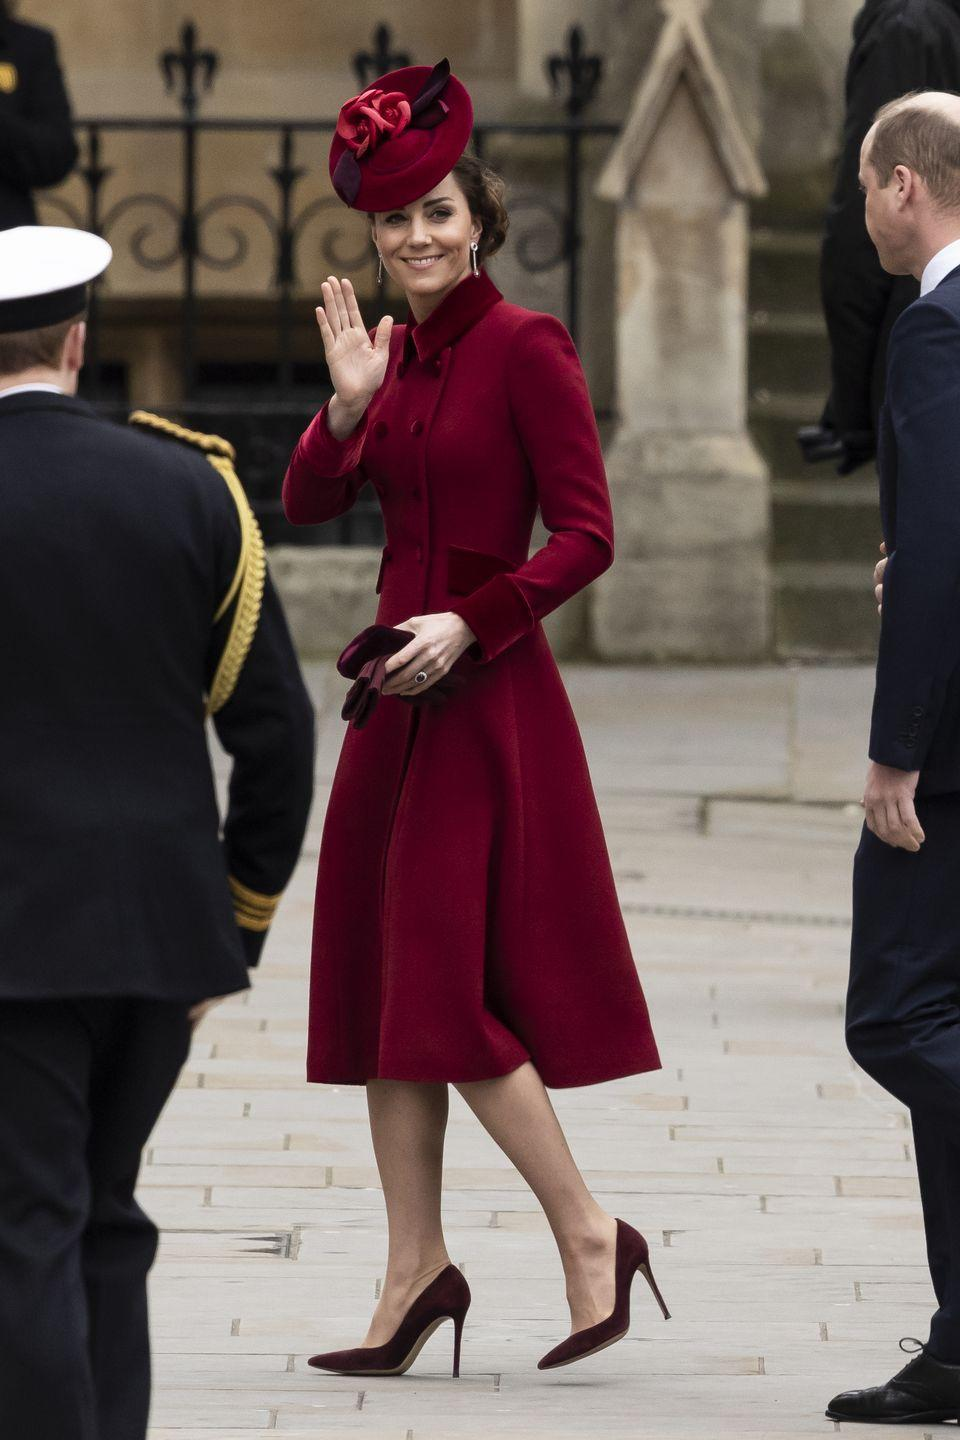 "<p>Kate chose a burgundy Catherine Walker <a href=""https://www.townandcountrymag.com/society/tradition/a31139621/kate-middleton-red-coat-dress-commonwealth-service-photos/"" rel=""nofollow noopener"" target=""_blank"" data-ylk=""slk:coat dress"" class=""link rapid-noclick-resp"">coat dress</a> for 2020's Commonwealth Day celebrations. She paired the elegant look (which she <a href=""https://www.townandcountrymag.com/style/fashion-trends/a25634345/kate-middleton-red-coat-christmas-day-photos/"" rel=""nofollow noopener"" target=""_blank"" data-ylk=""slk:also wore on Christmas in 2018"" class=""link rapid-noclick-resp"">also wore on Christmas in 2018</a>) with matching pumps and a red, floral hat. </p>"